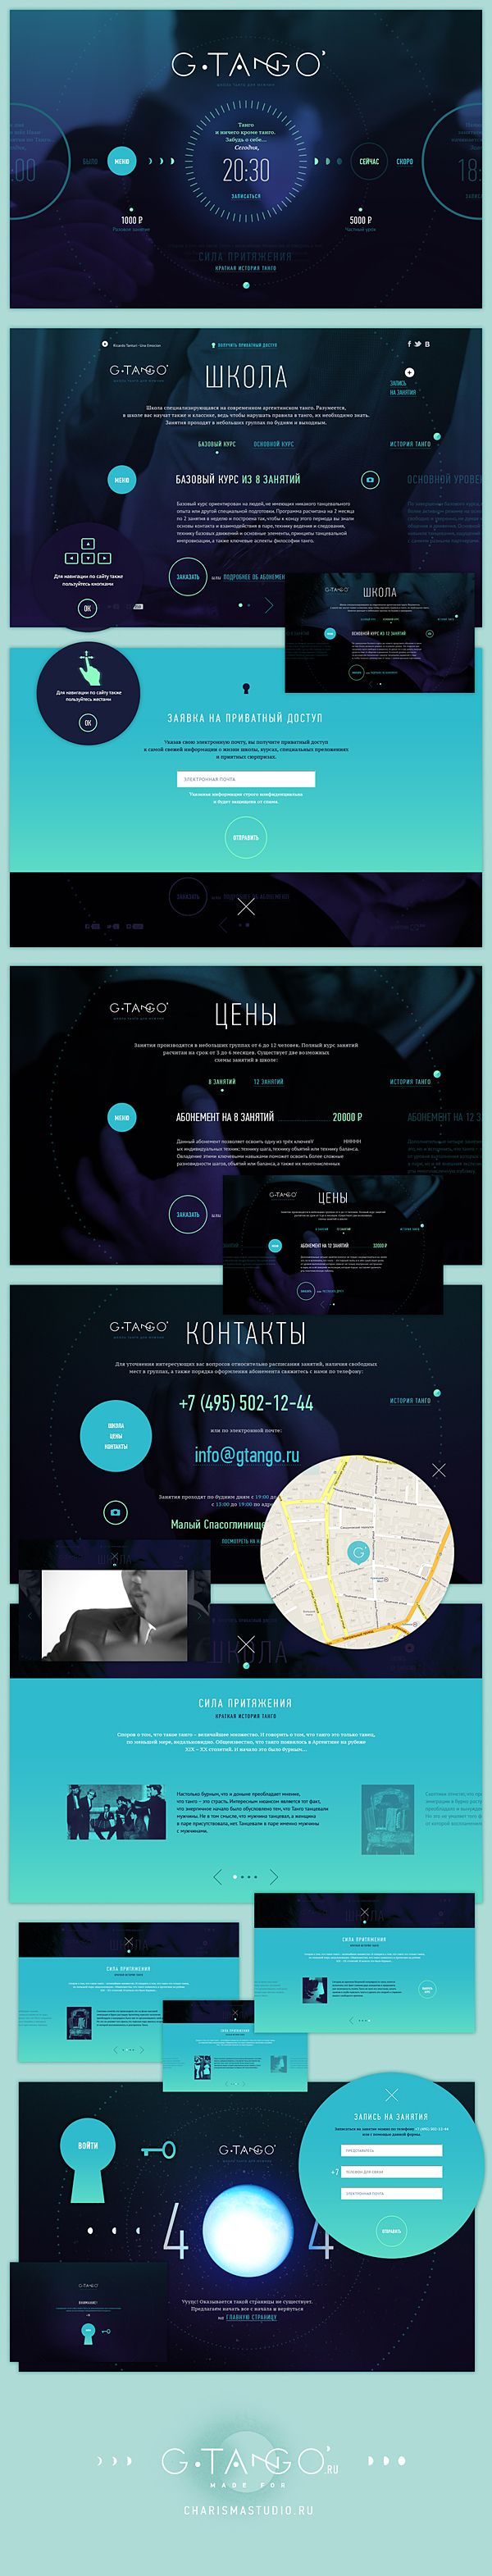 T A N G O by Sasha Firs, via Behance | #webdesign #it #web #design #layout #userinterface #website #webdesign < repinned by www.BlickeDeeler.de | Take a look at www.WebsiteDesign-Hamburg.de